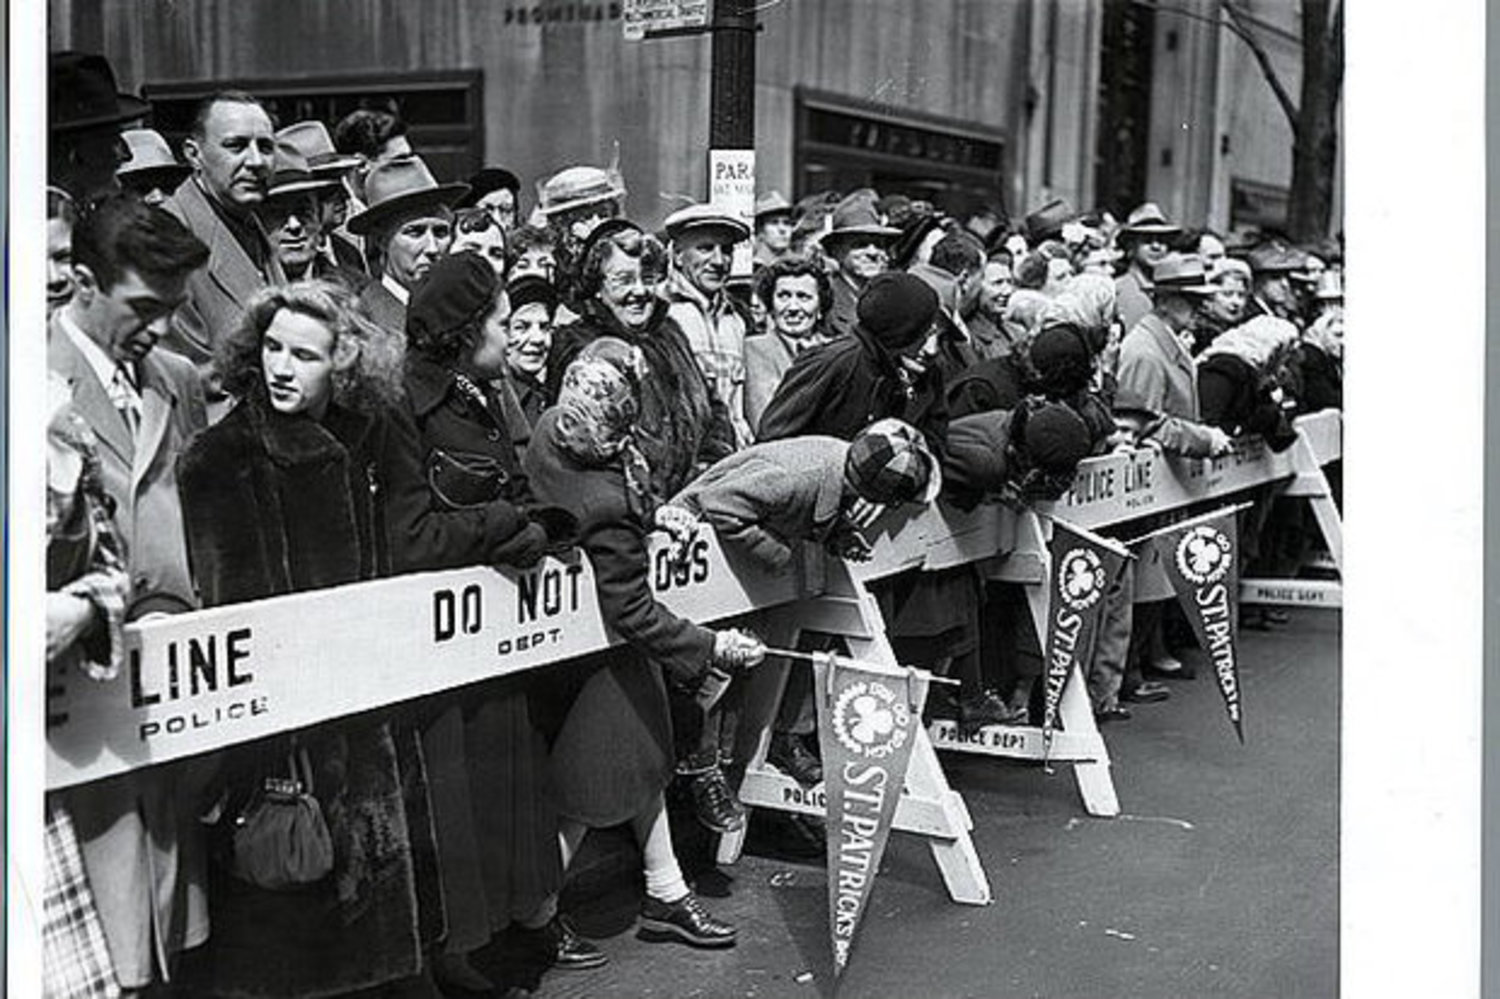 A crowd waits by along the St. Patrick's Day Parade route on 5th Avenue in 1951 New York.